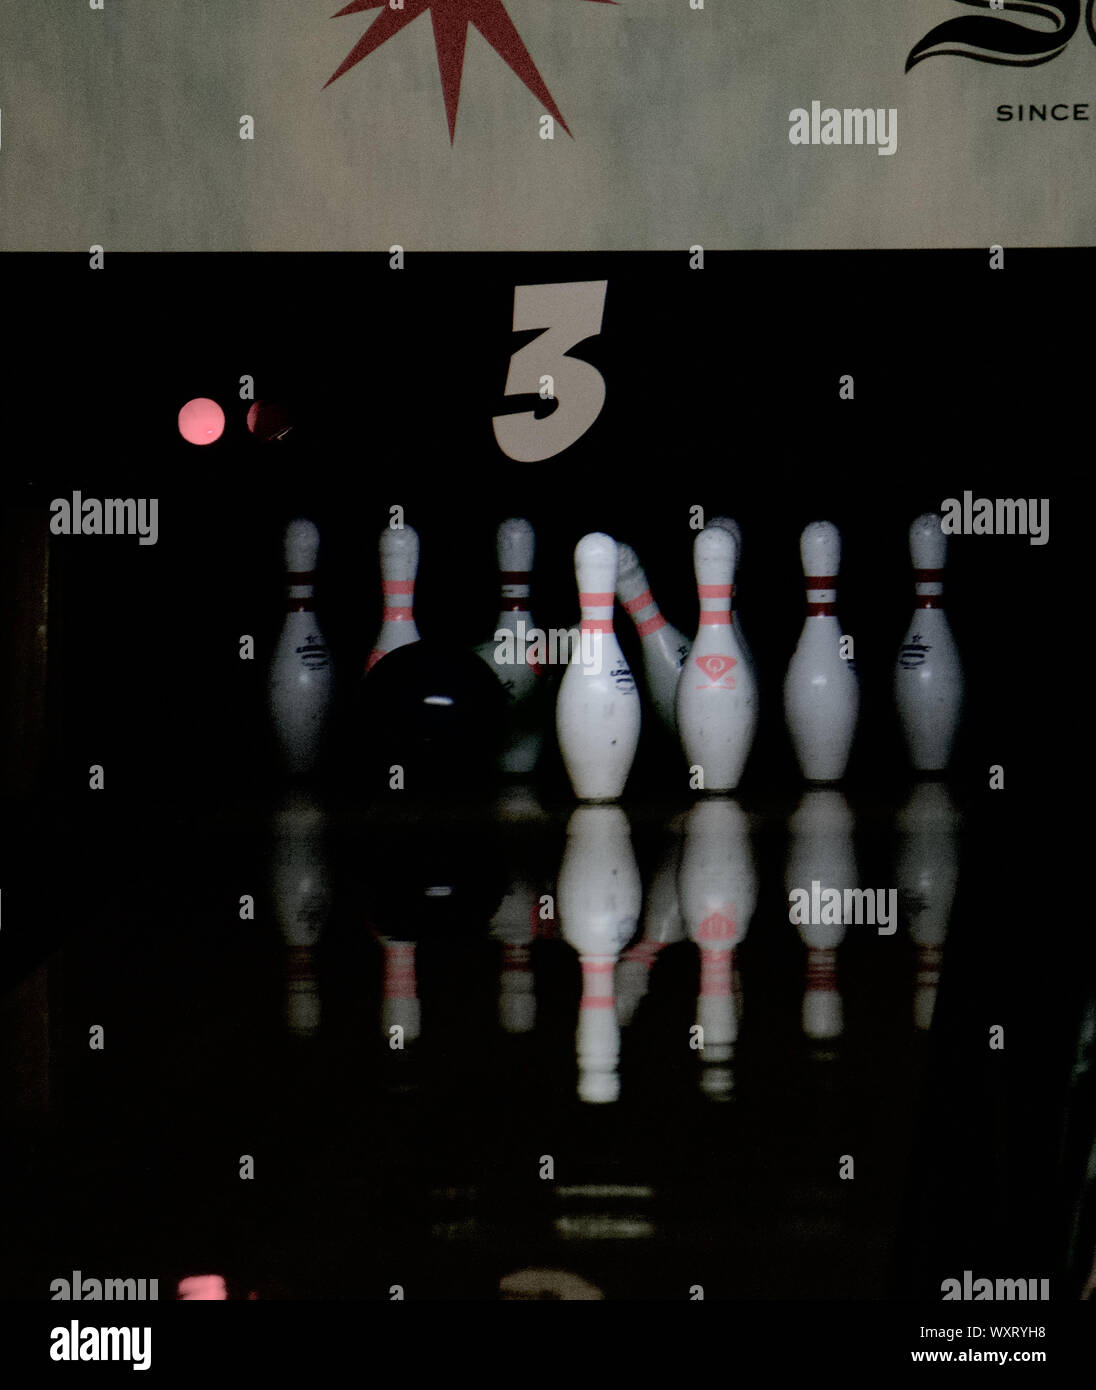 Bowling lane with bowling ball striking bowling pins with red stripes. Park Tavern bowling and entertainment center. St. Louis Park, Minnesota, USA. Stock Photo